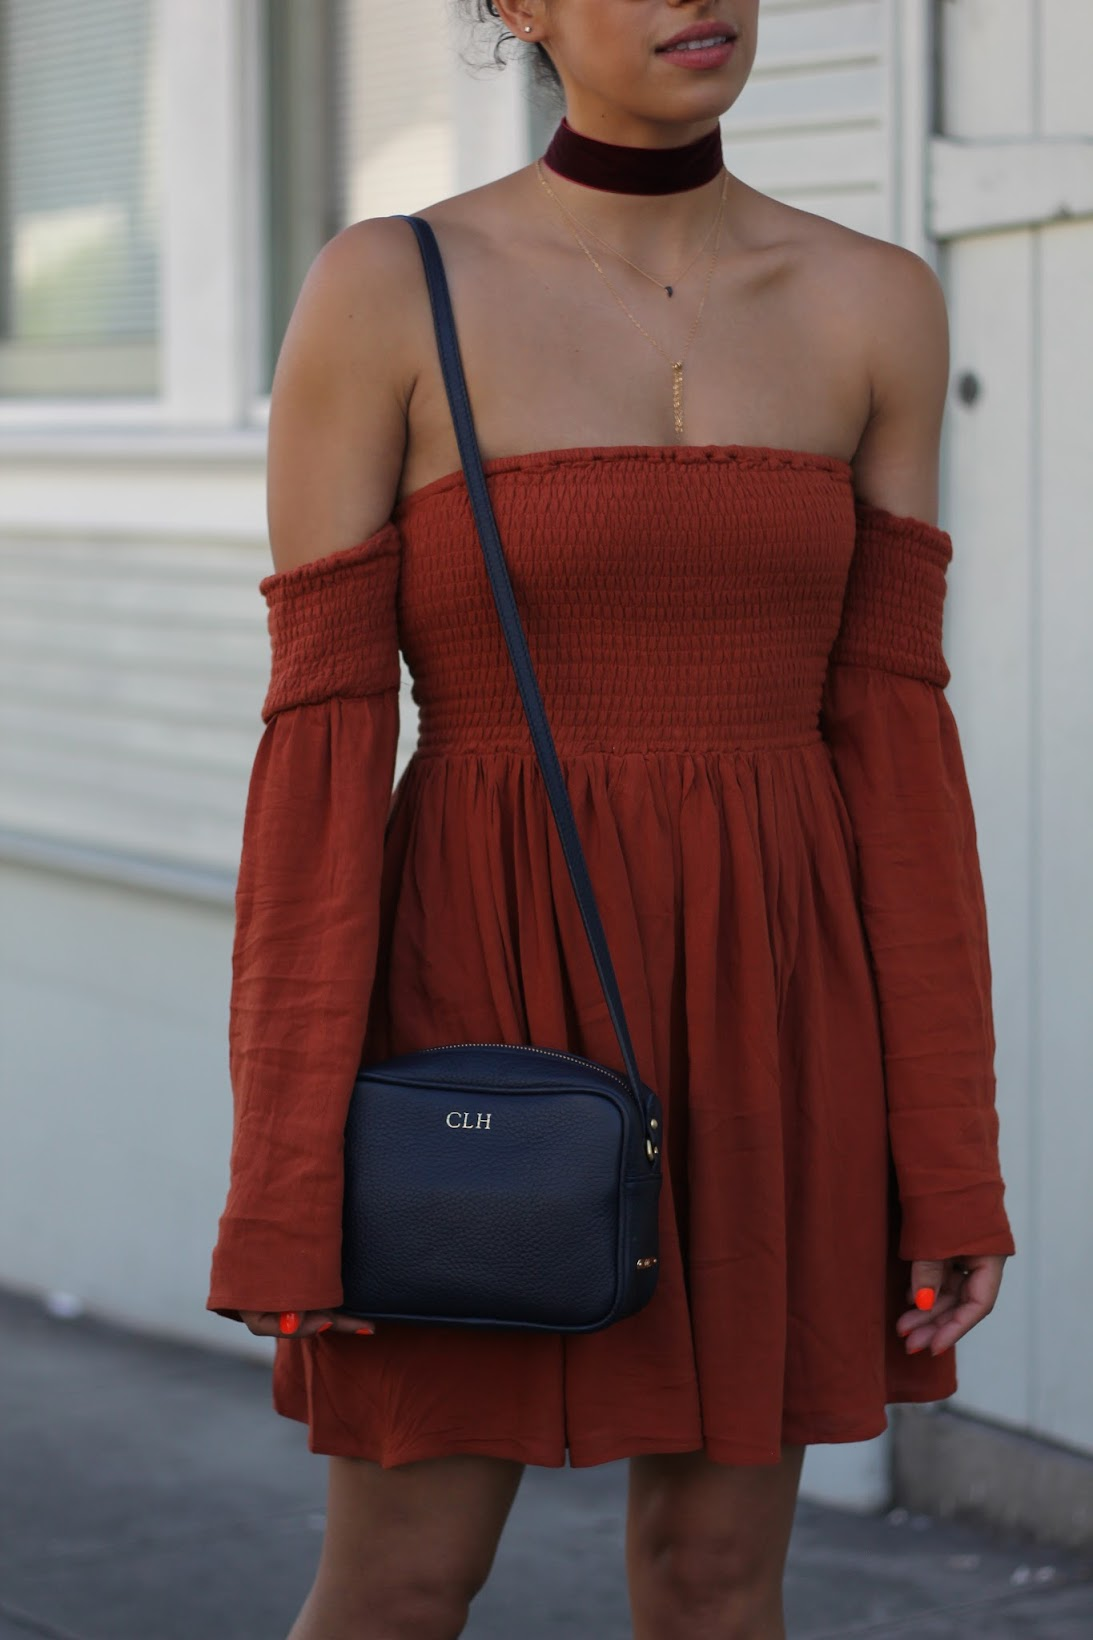 Tobi, tobi off the shoulder dress, pumpkin spice color dress, fall style, fall colors, Fall in San Francisco, Daisy's Fashion Garden, Tobi dress, Gap, SEE sunglasses, BaubleBar velvet choker